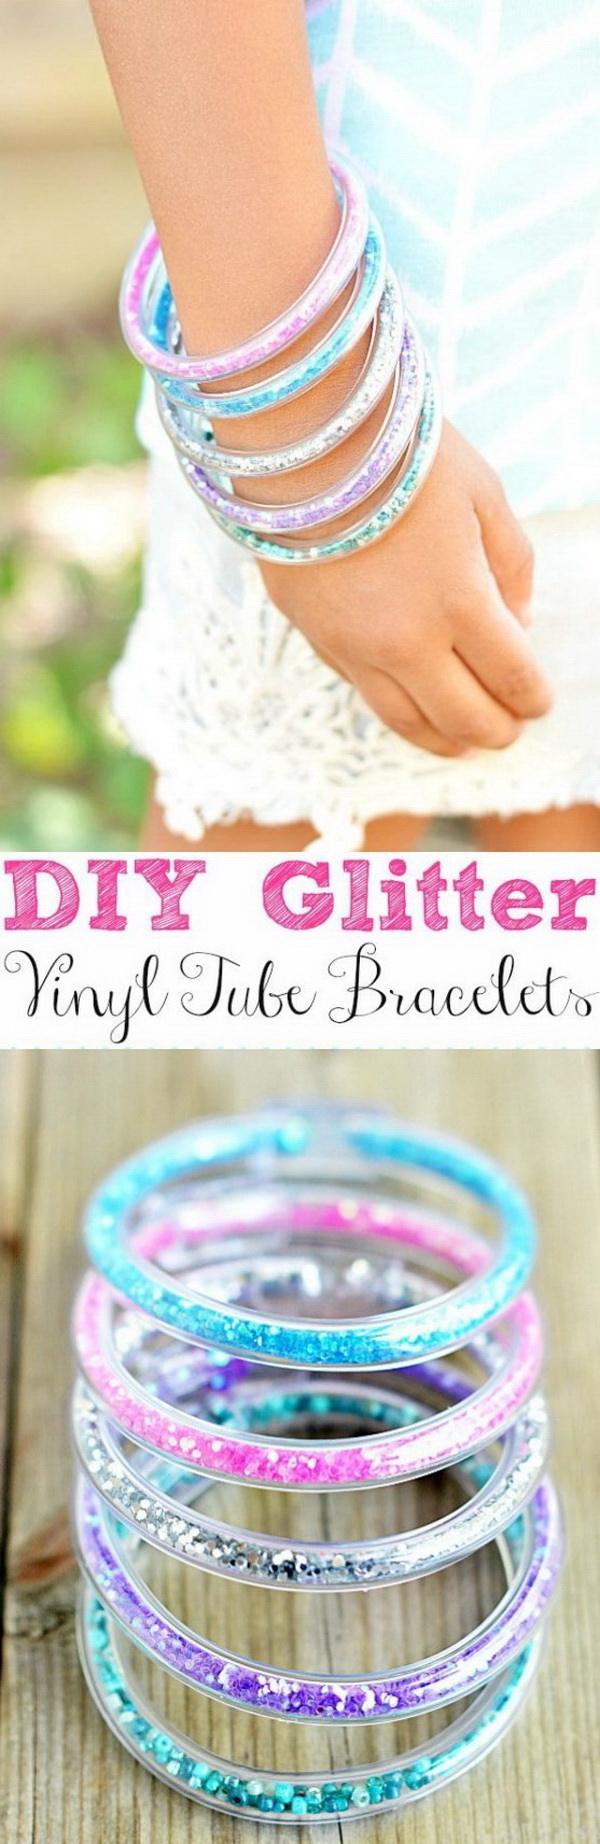 Glitter Vinyl Tube Bracelets. Adorn the little girls in your life with some princess-inspired glitter bracelets! And yes, you can make these all your own with  some vinyl tubing and glitter!